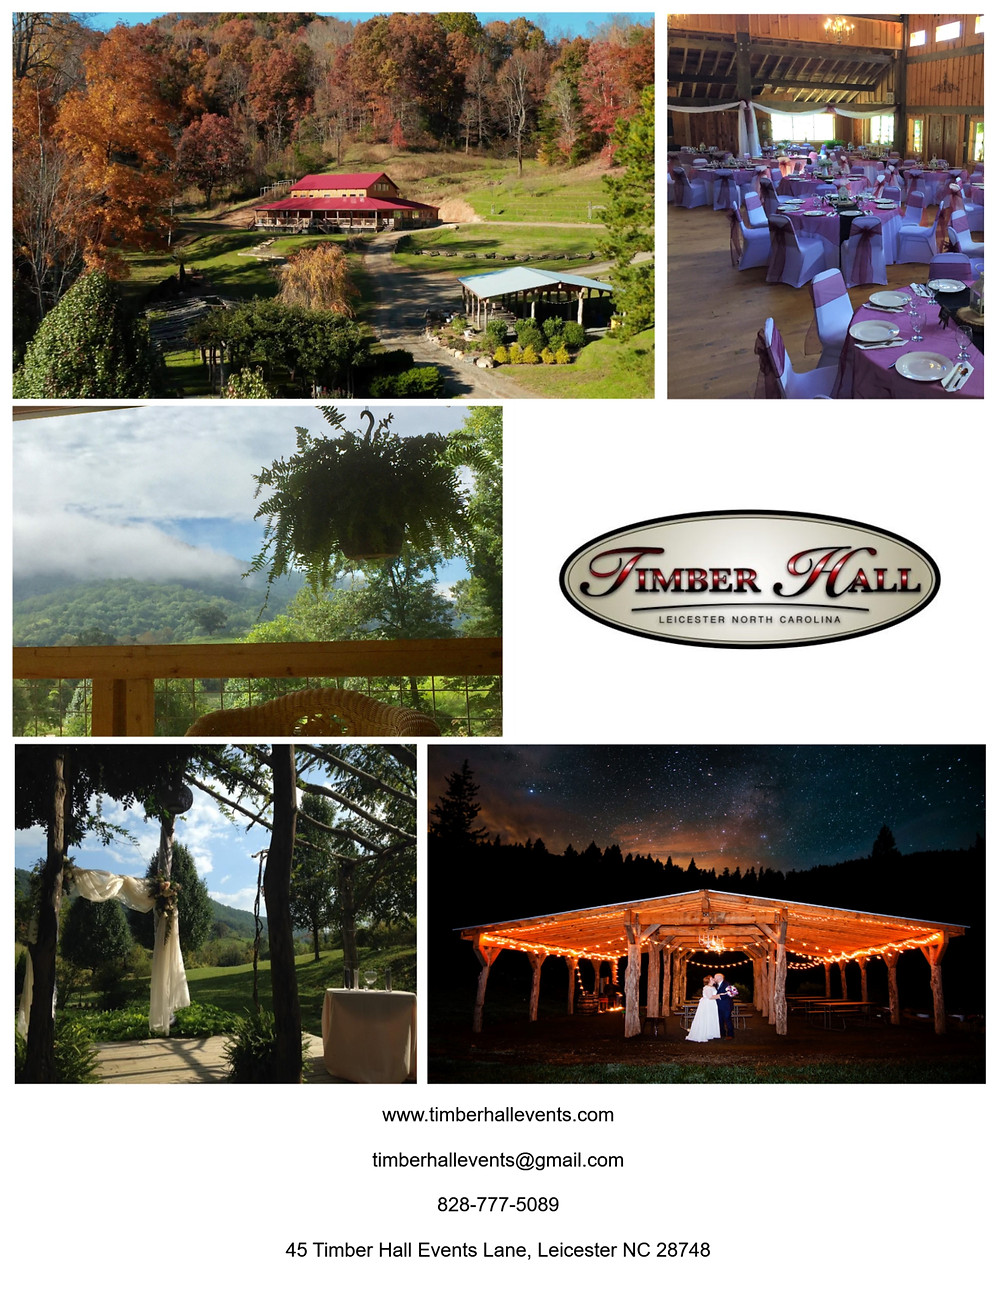 An event center not far from our vacation rentals in Asheville